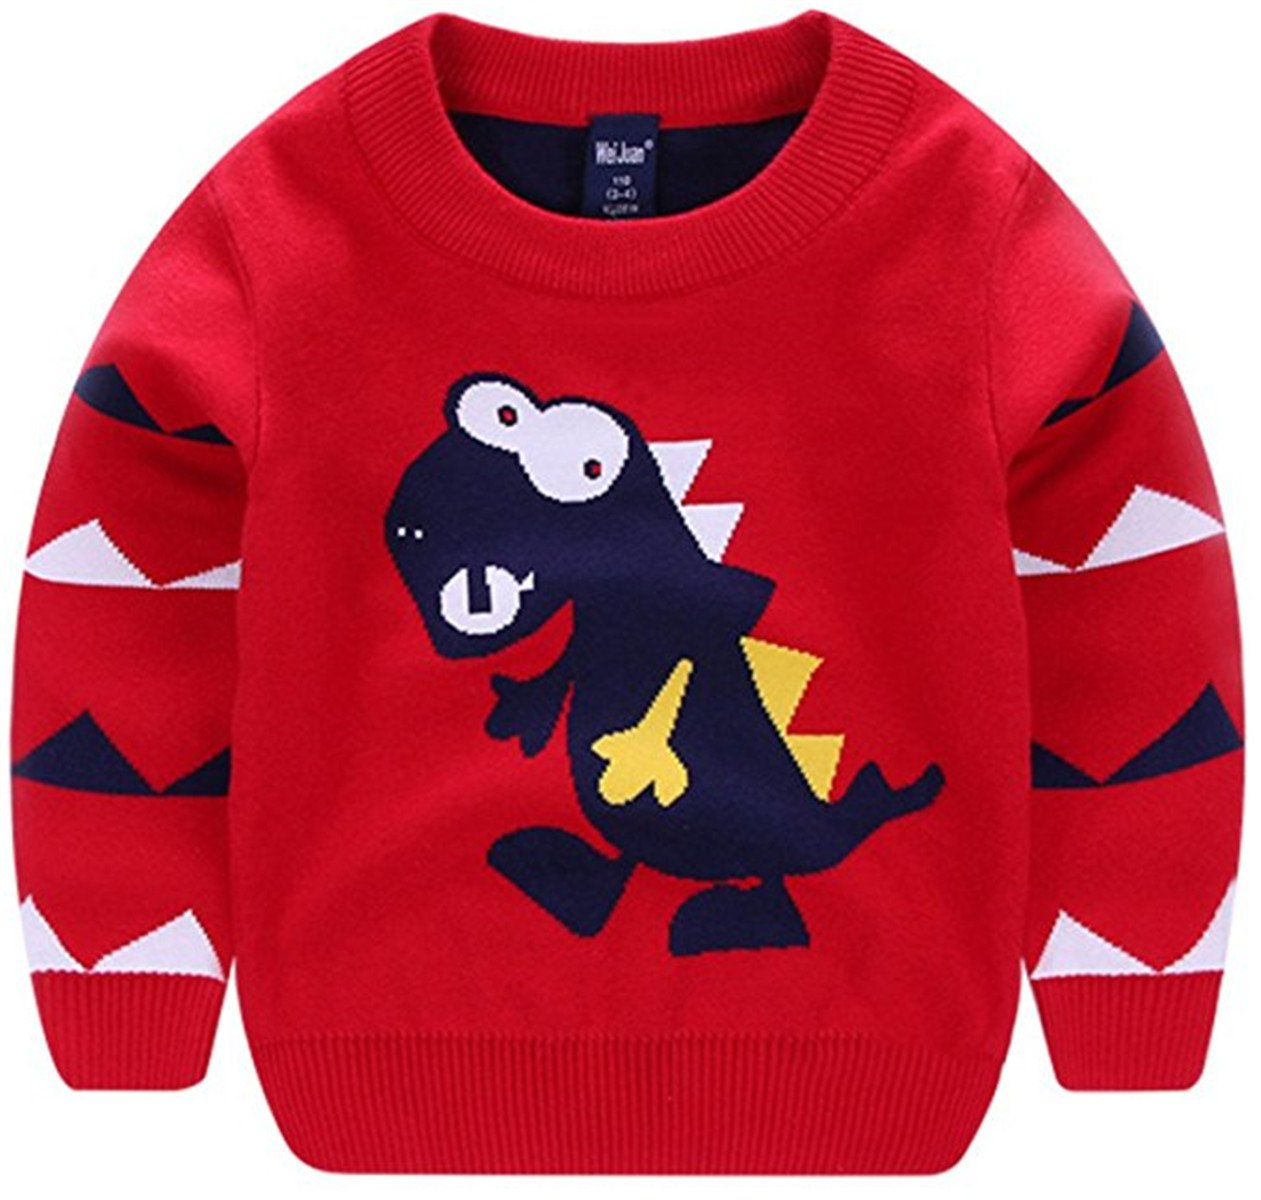 Kids Toddler Kids Little Girls Boys Dinosaurs Cartoon Pullover Sweaters Sweatershirt